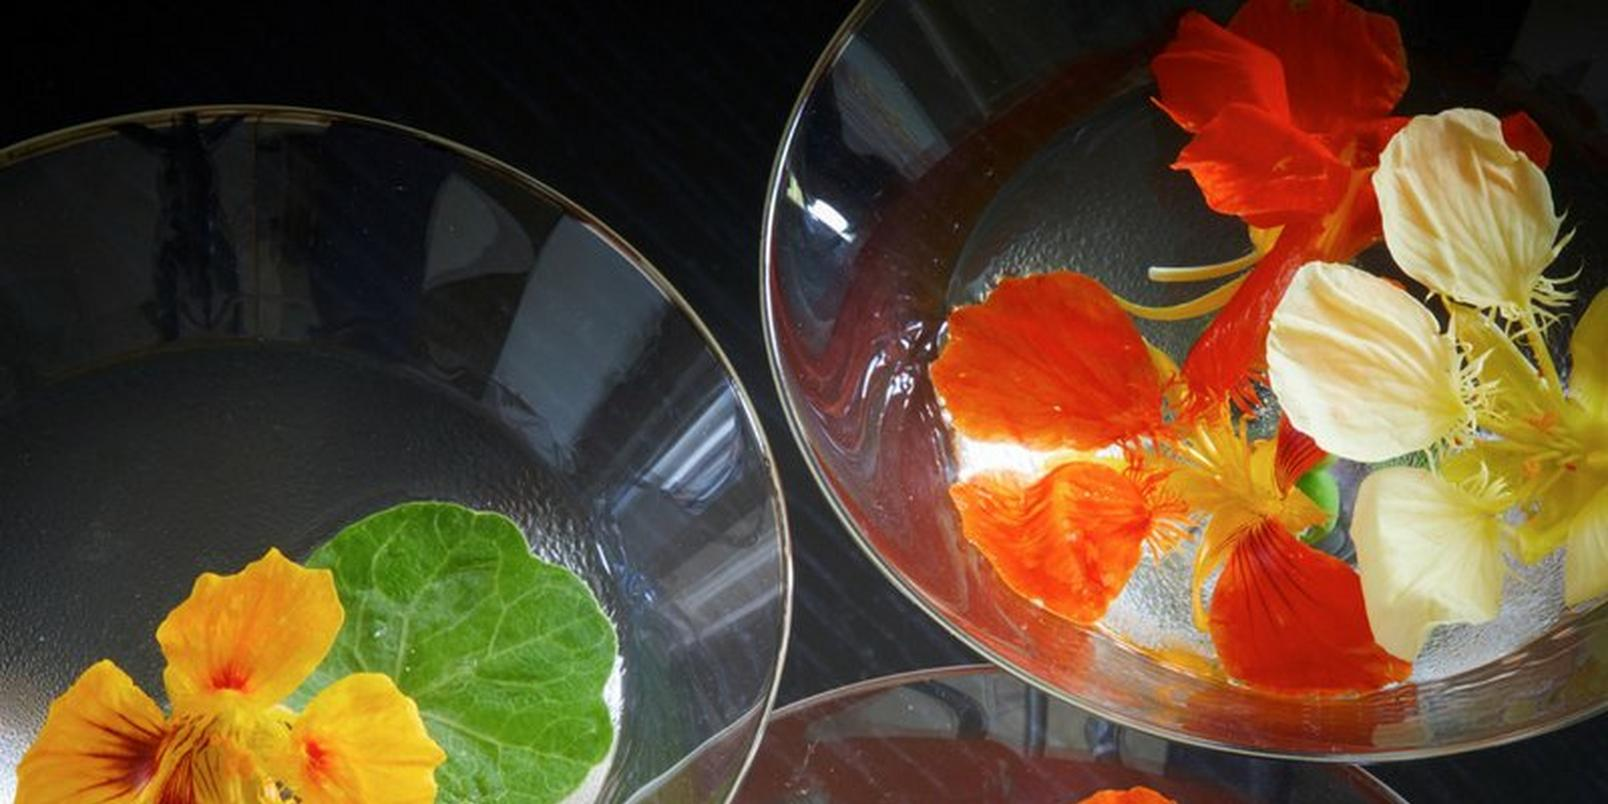 6-Floral-Cocktail-Recipes-Youll-Love-This-Summer6